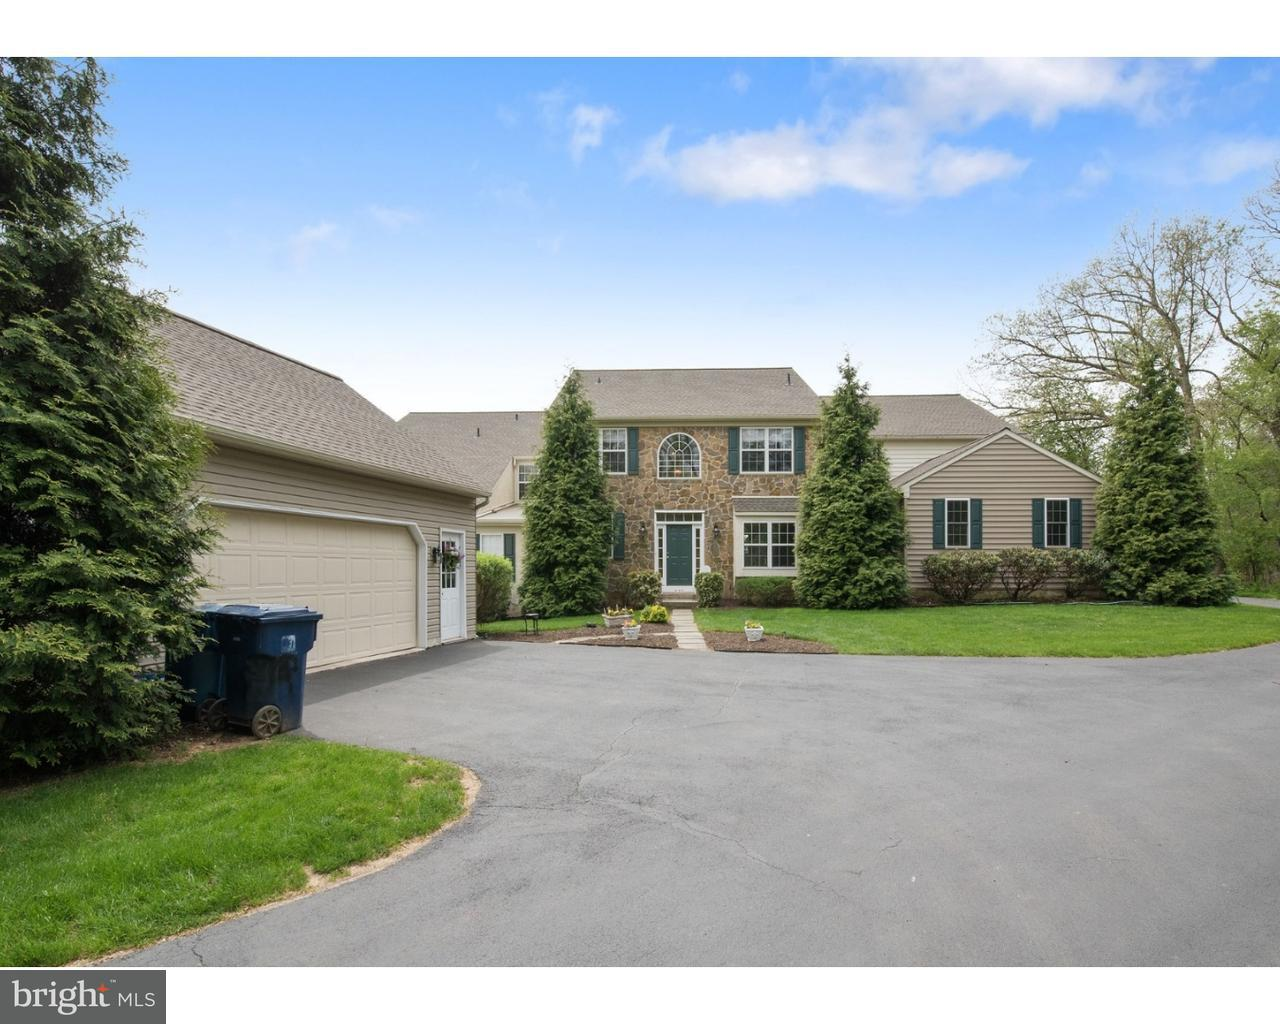 535 WINDY HILL RD, WEST CHESTER - Listed at $370,000, WEST CHESTER